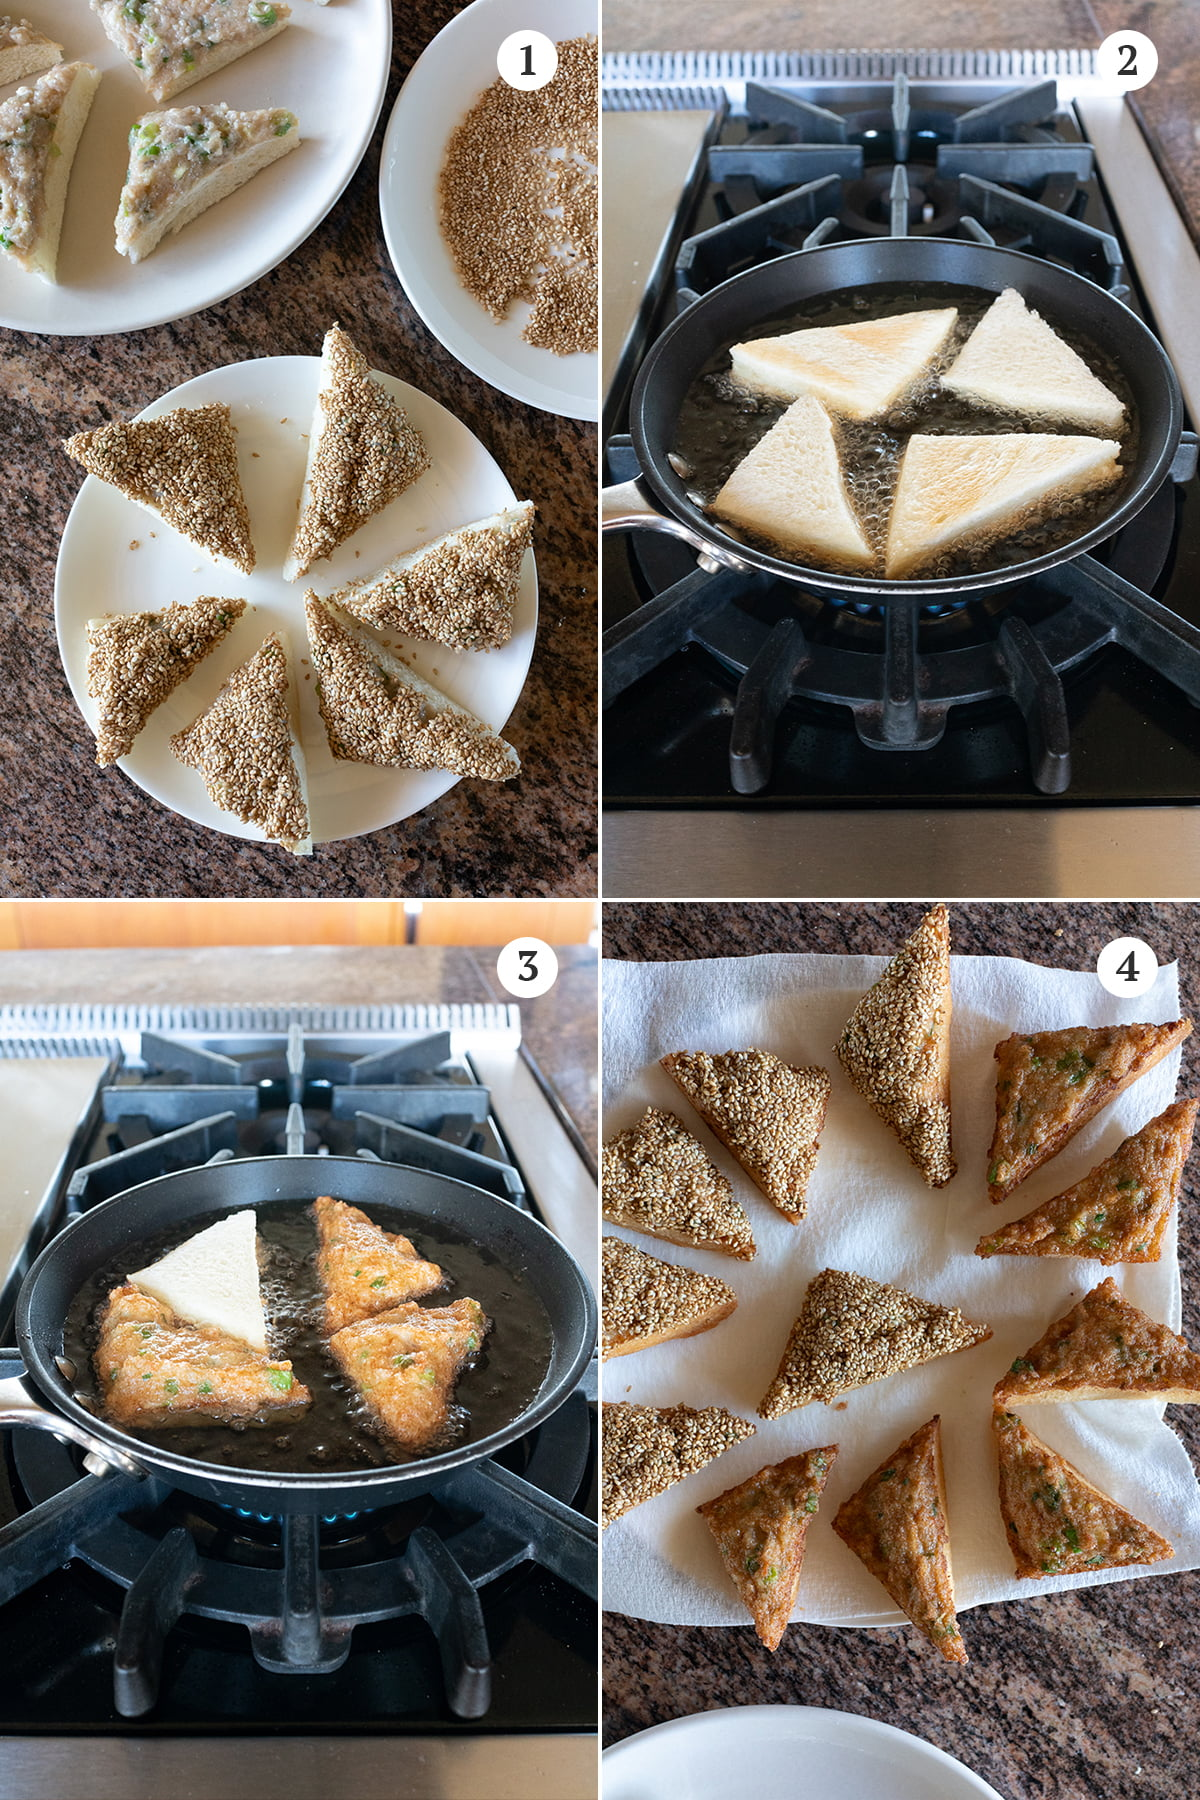 Collage of frying steps: 1) spread the shrimp paste on all the bread slices, 2) fry shrimp side down first, 3) fry bread side down second, 4) remove to paper towel lined plate.